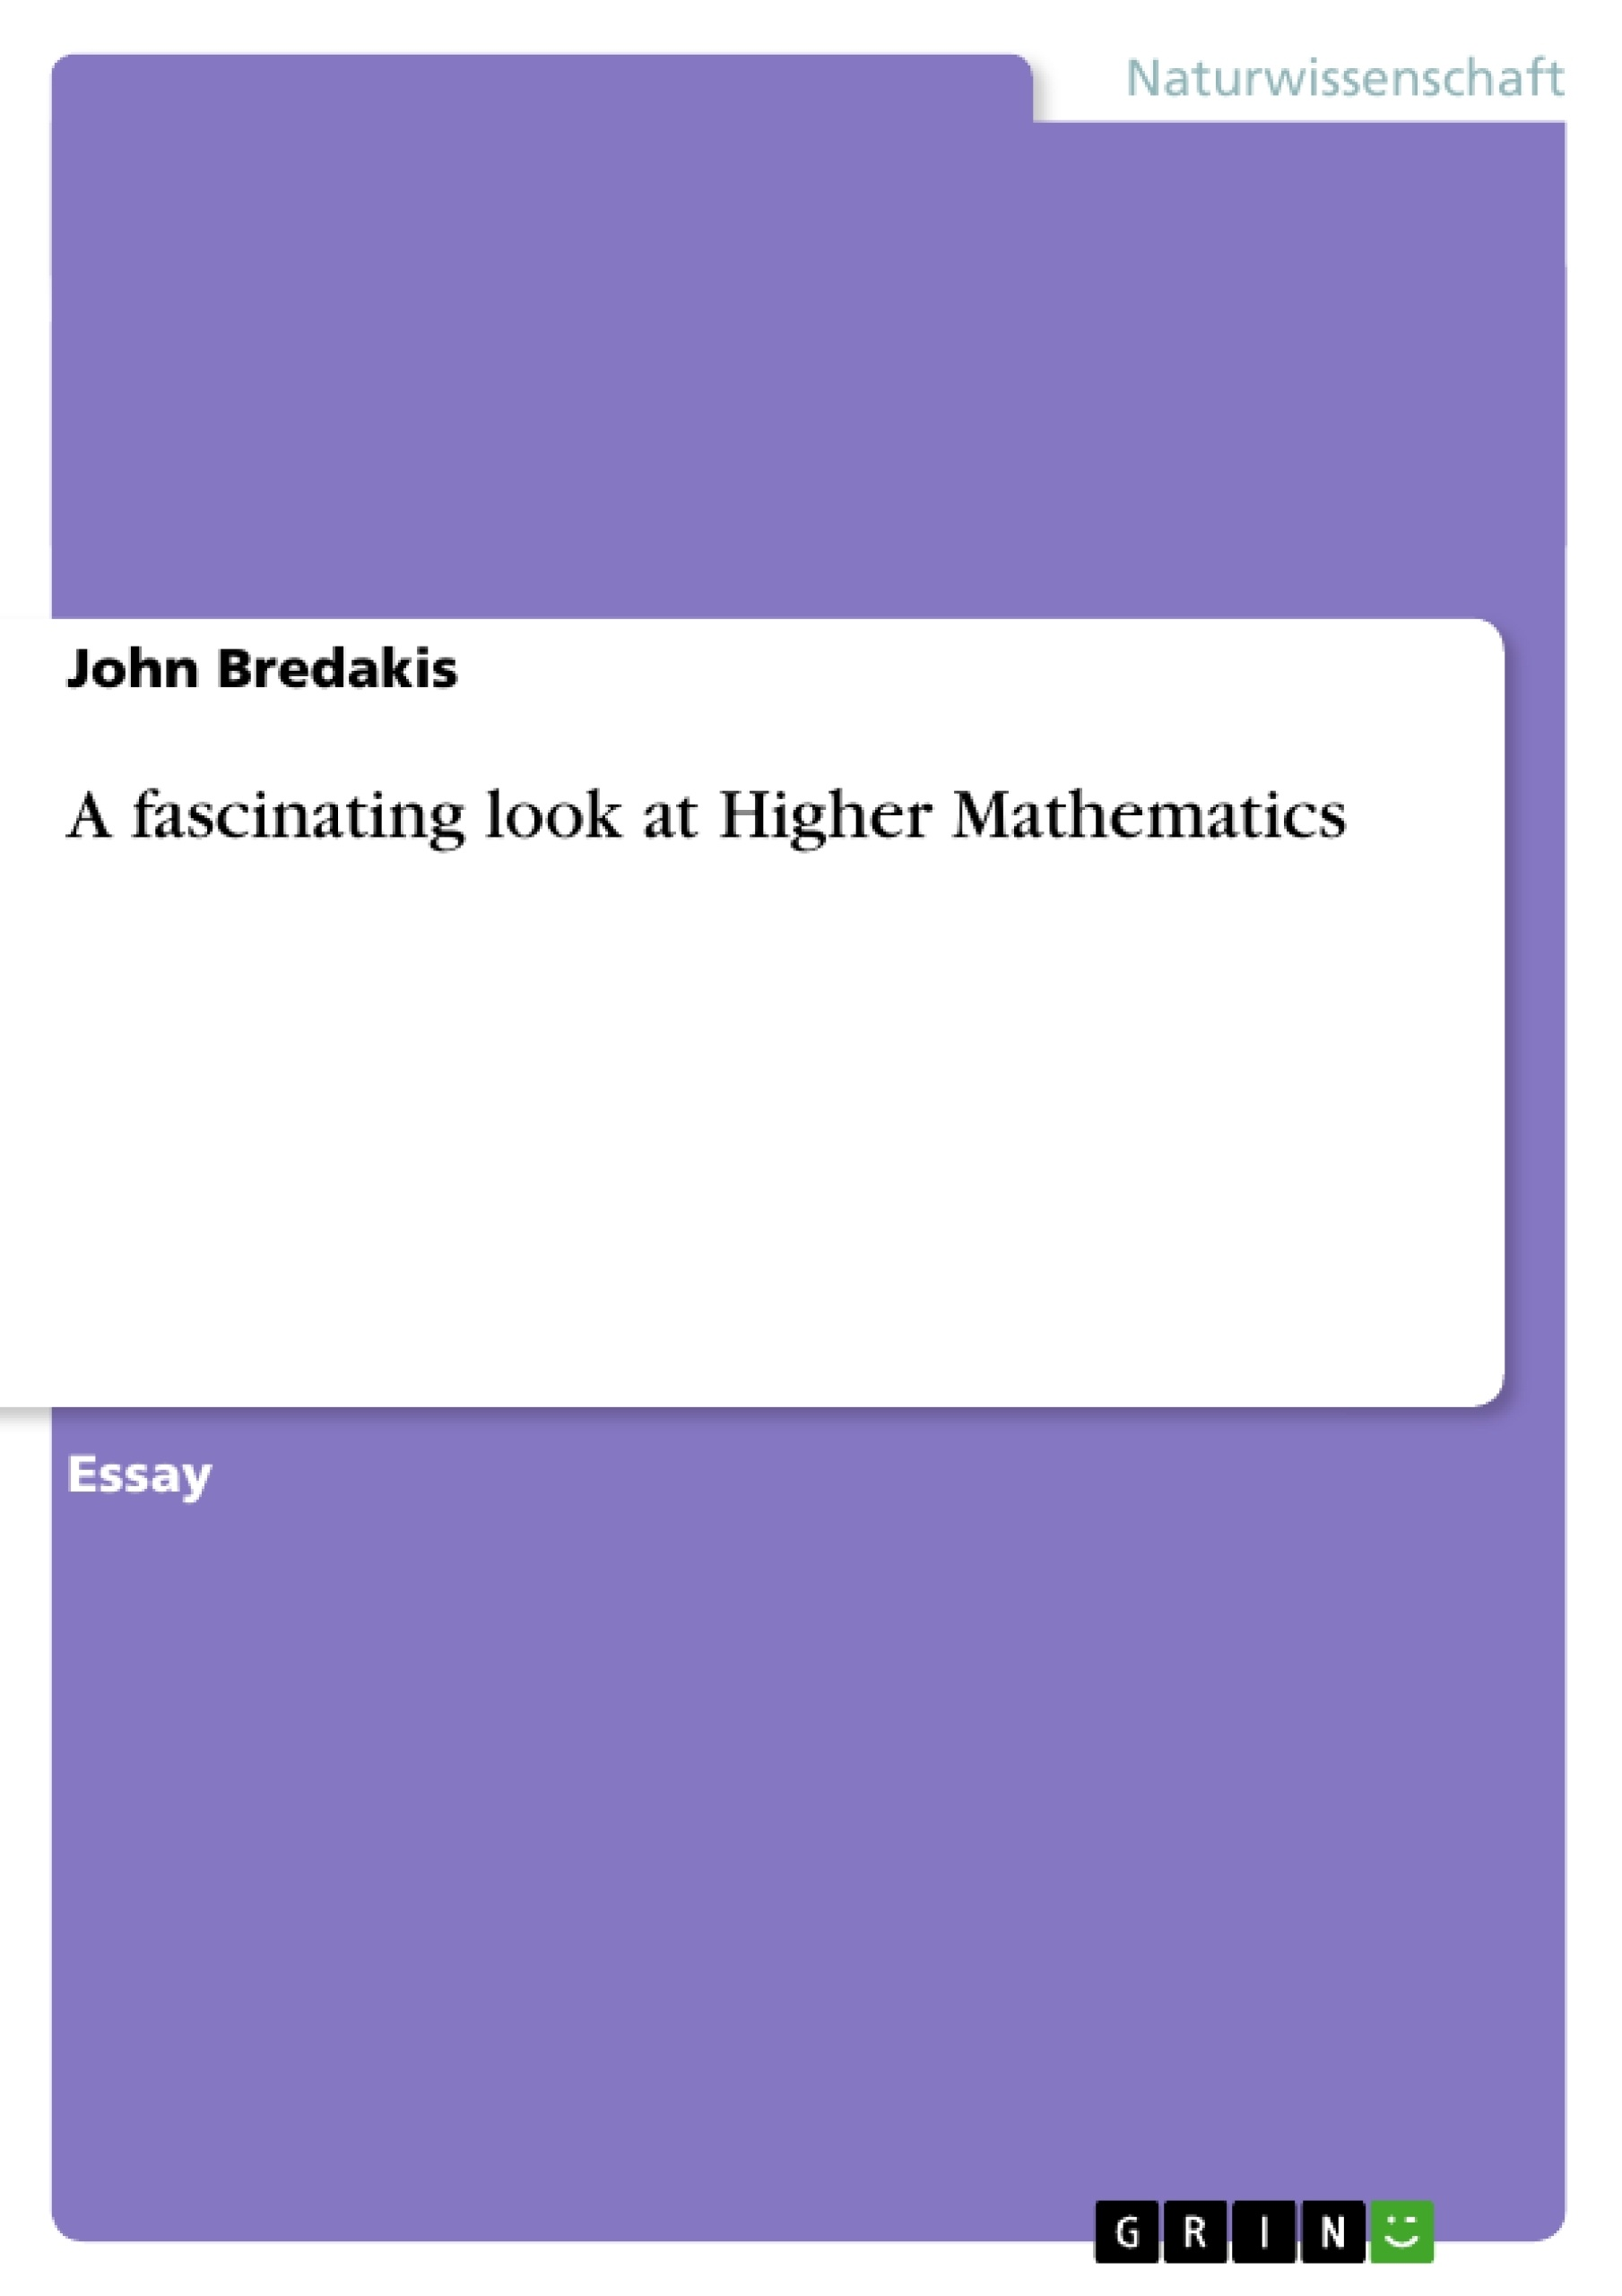 Titel: A fascinating look at Higher Mathematics